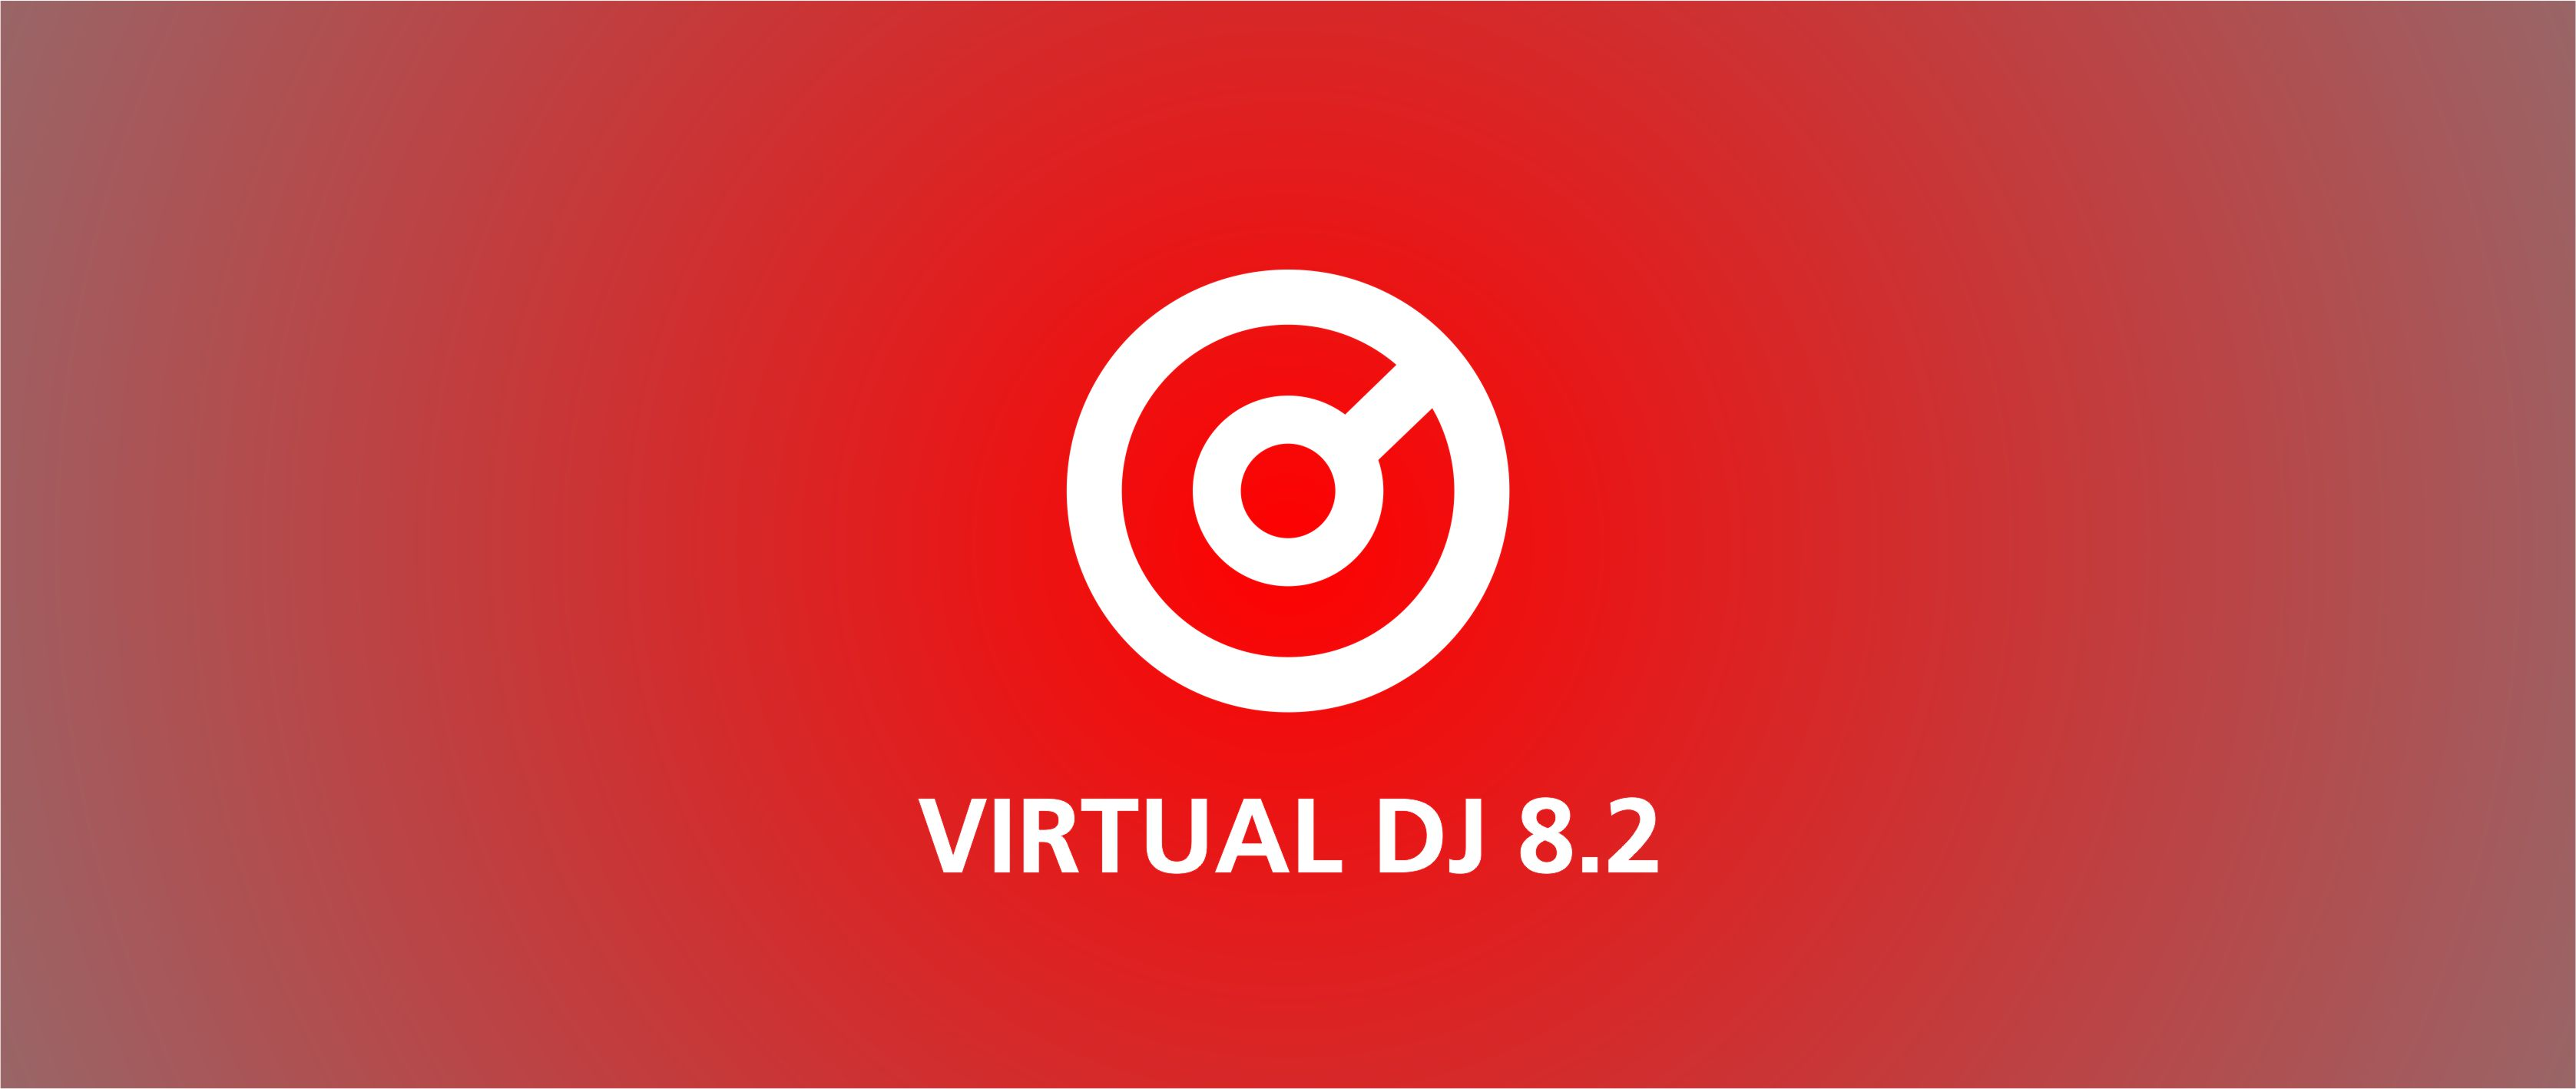 Virtual DJ 8.2 ist da · Deejay-Basics.de